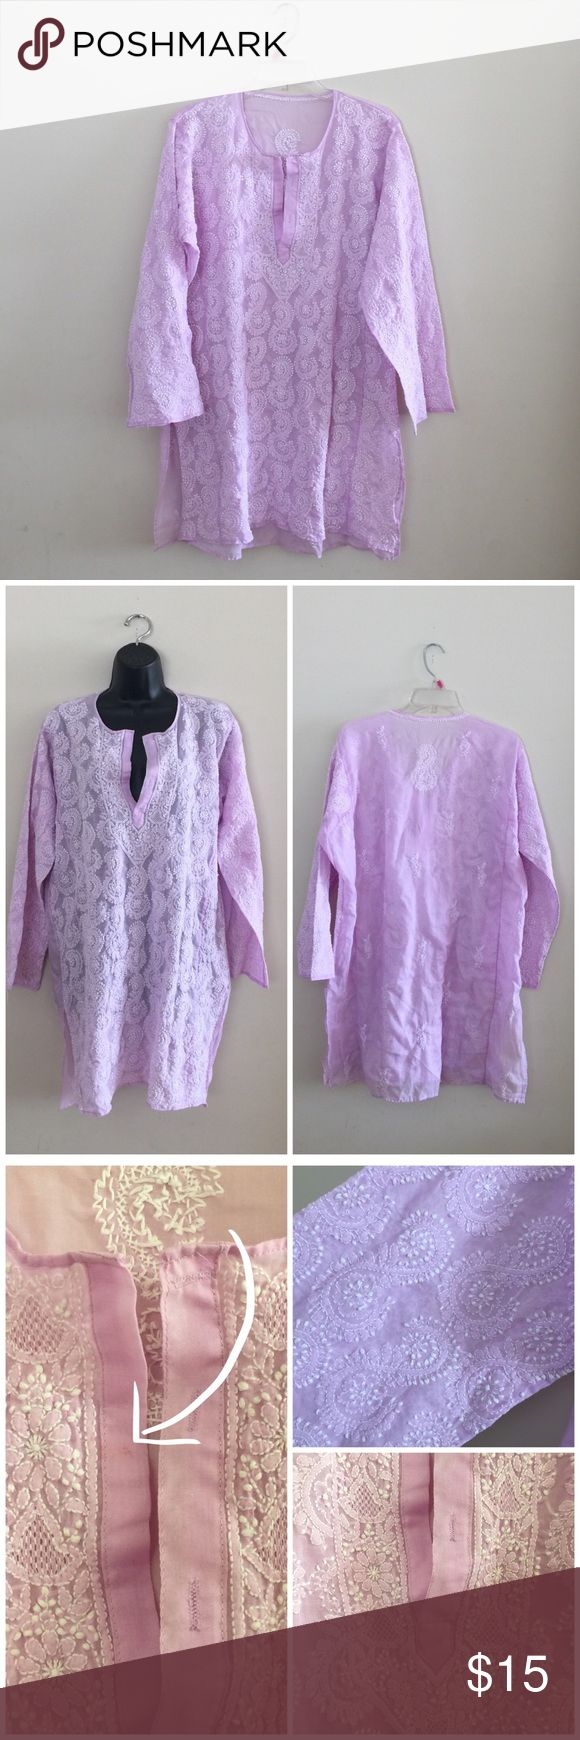 Handmade Indian tunic So cute! It's the perfect shade of purple, too. This was brought for India, but unfortunately, it does not fit me right. Best for a size 12/14 for that oversized look. Sheer, with sleeves a little longer than 3/4. Has a tiny stain in the front, as shown in photos.   ❌No trades/swaps ❌No PayPal 🐶Pet friendly home 📫I ship M, W, & F 🚭Smoke free home  ❗️24 hour reservations  🛍Bundle 2+ items for a discount  ‼️My bundle discount is set to help out with the new shipping…